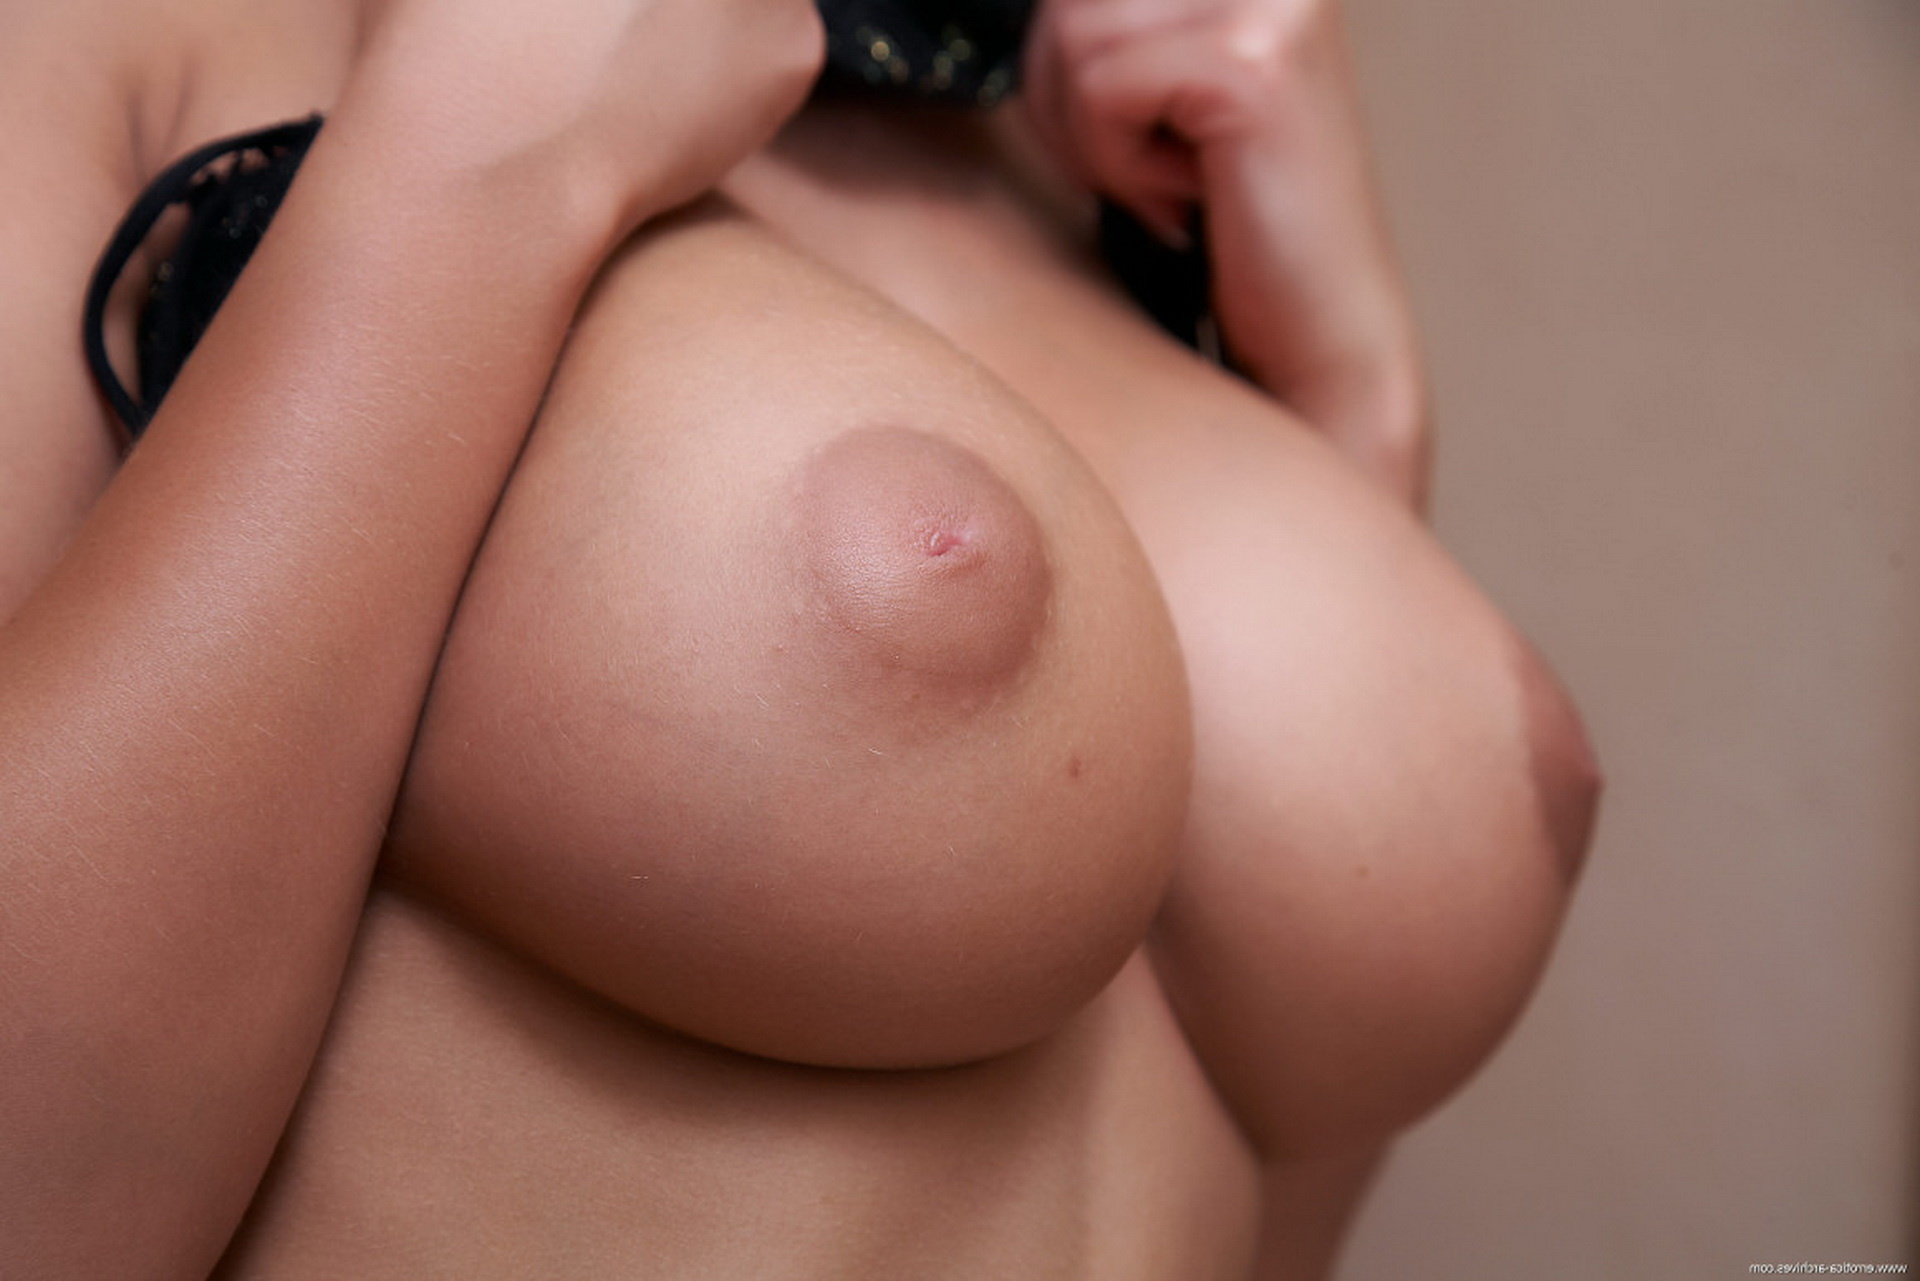 Opinion The best tits iranian wallpaper likely